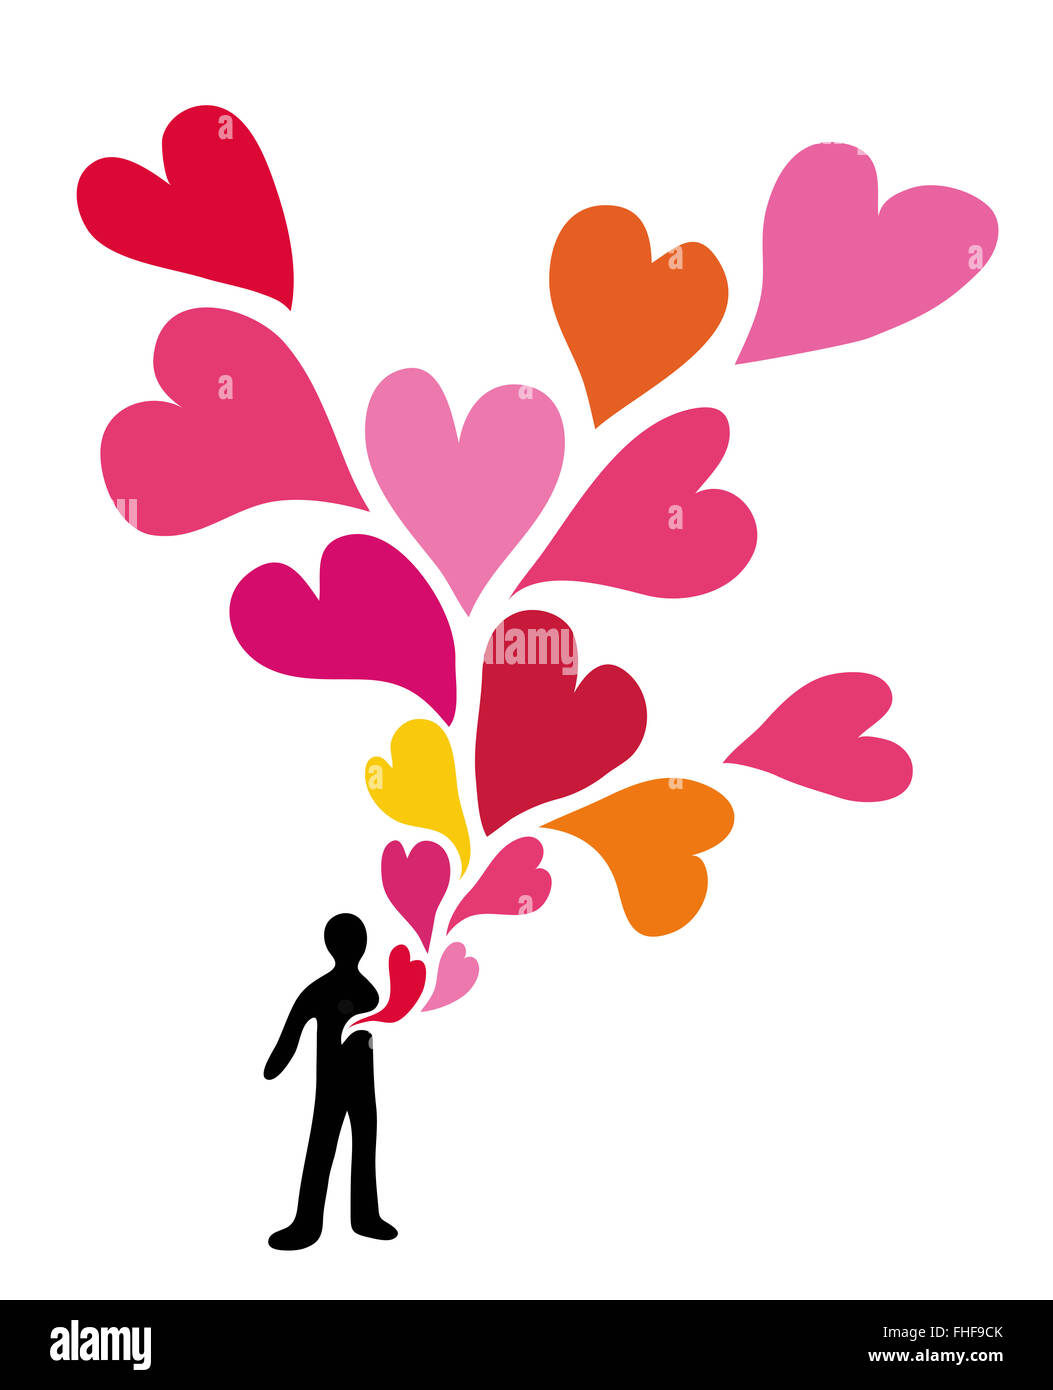 Love. Hearts flowing from human chest. - Stock Image